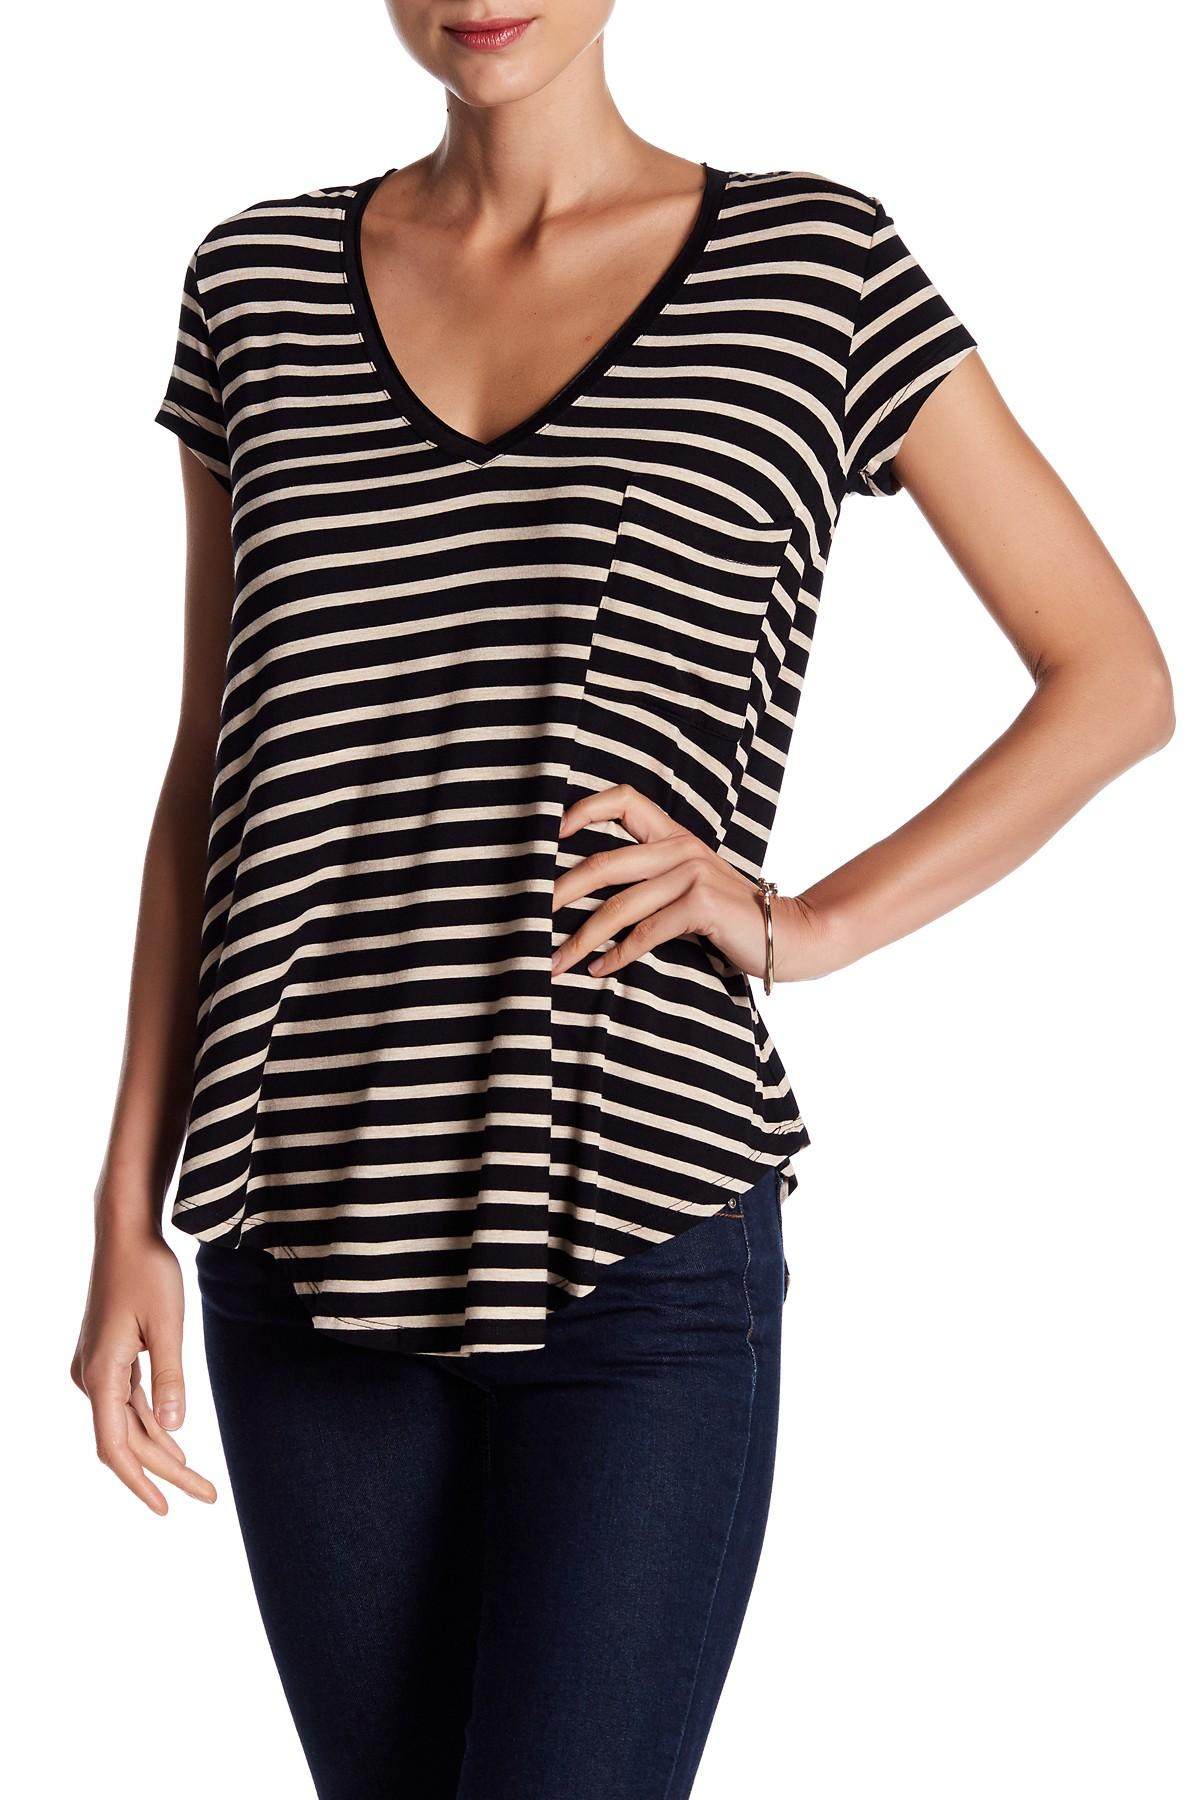 e3284d2efbca5 Lyst - Heather by Bordeaux Striped V-neck Tee in Black